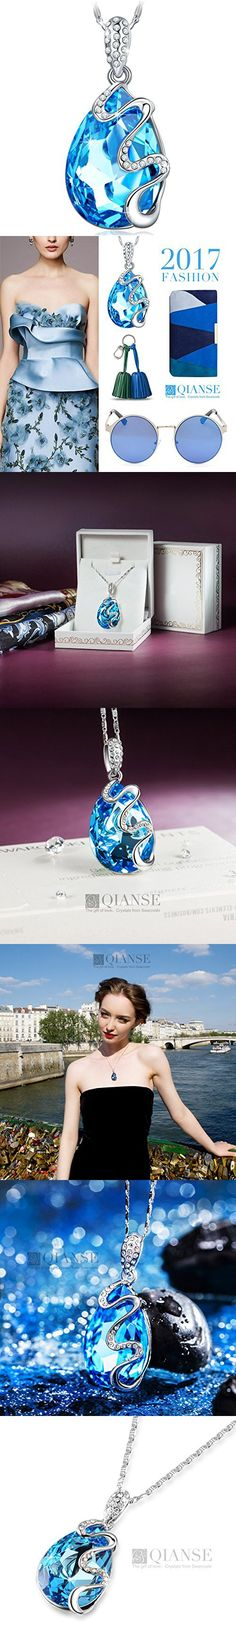 QIANSE Venice Dream Pendant Necklace Made with Teardrop Ocean Blue Swarovski Crystals, Jewelry for Women, birthday gifts for her